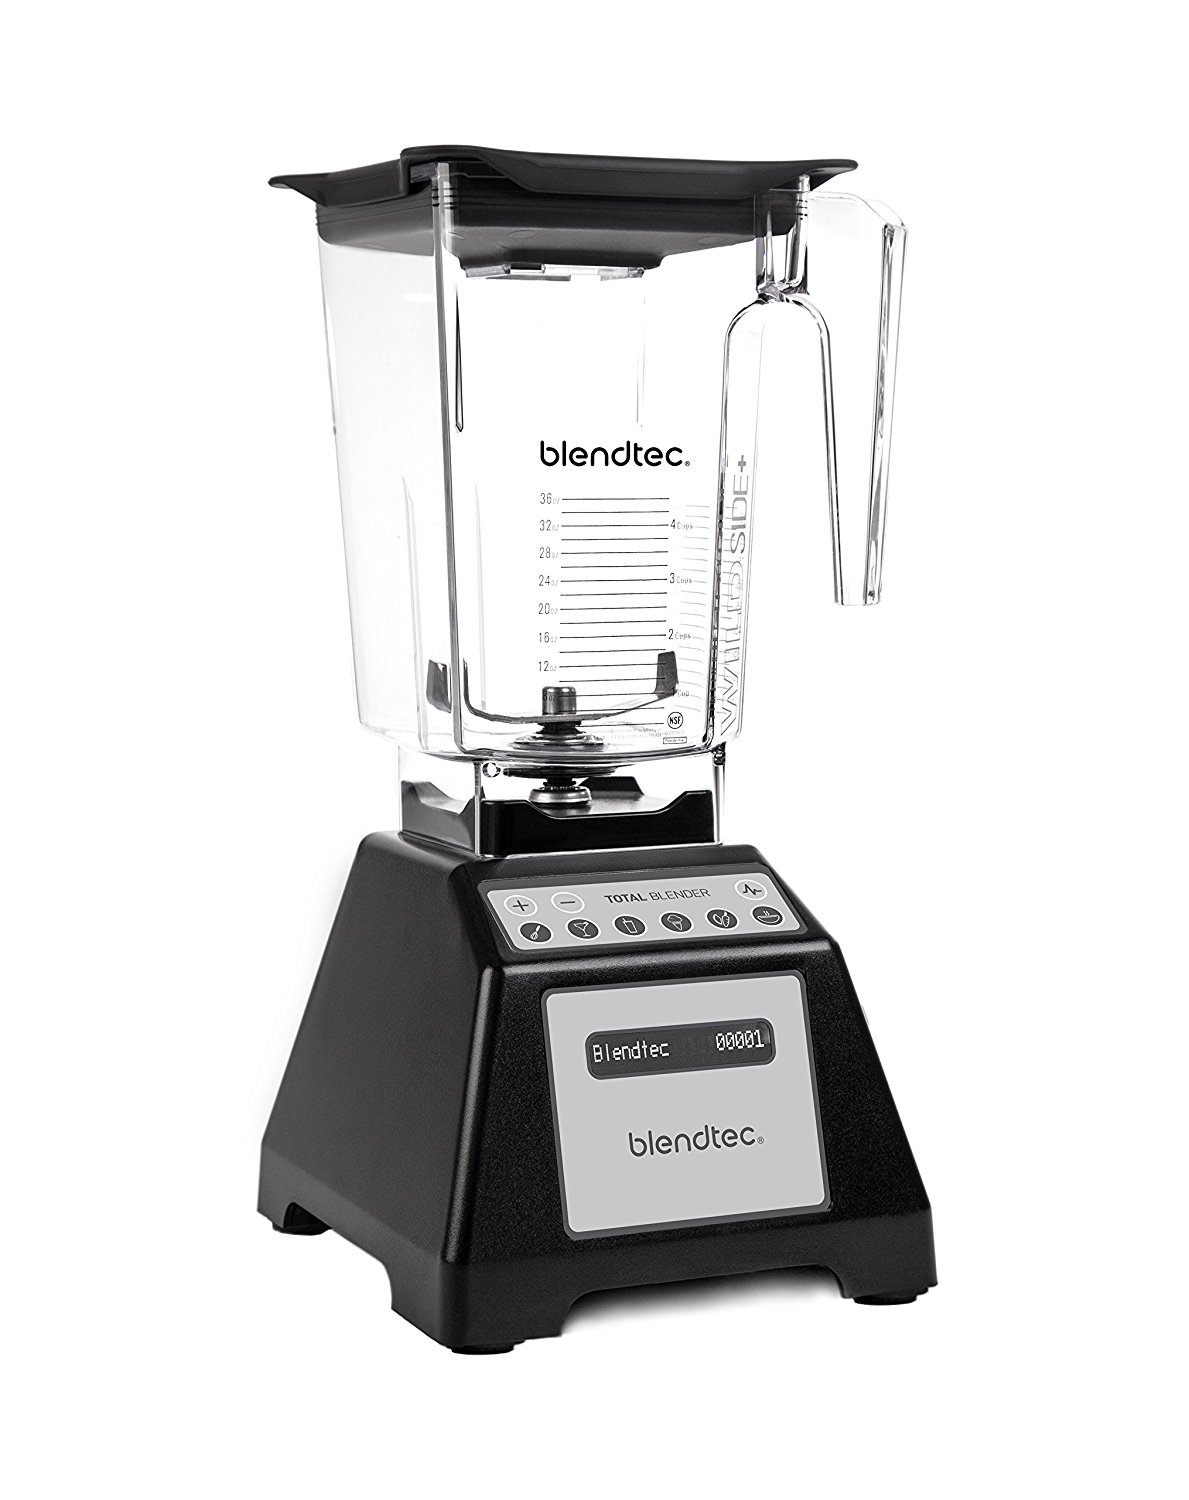 Image 5 2 - The 7 Best Blenders For Homemade Smoothies